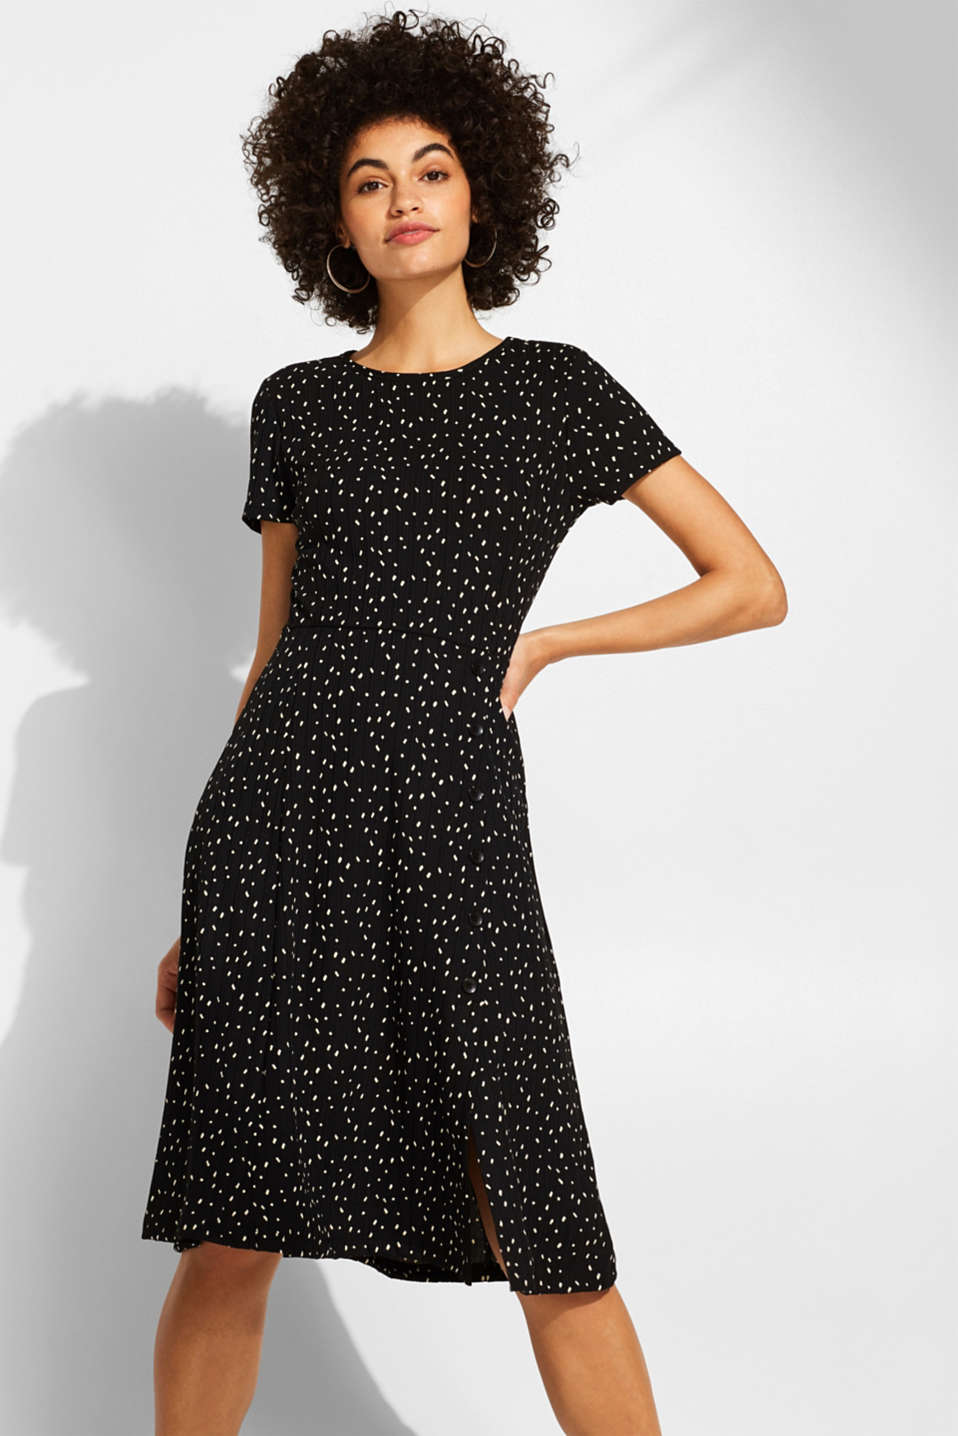 edc - Stretch jersey dress with a polka dot print and a button placket